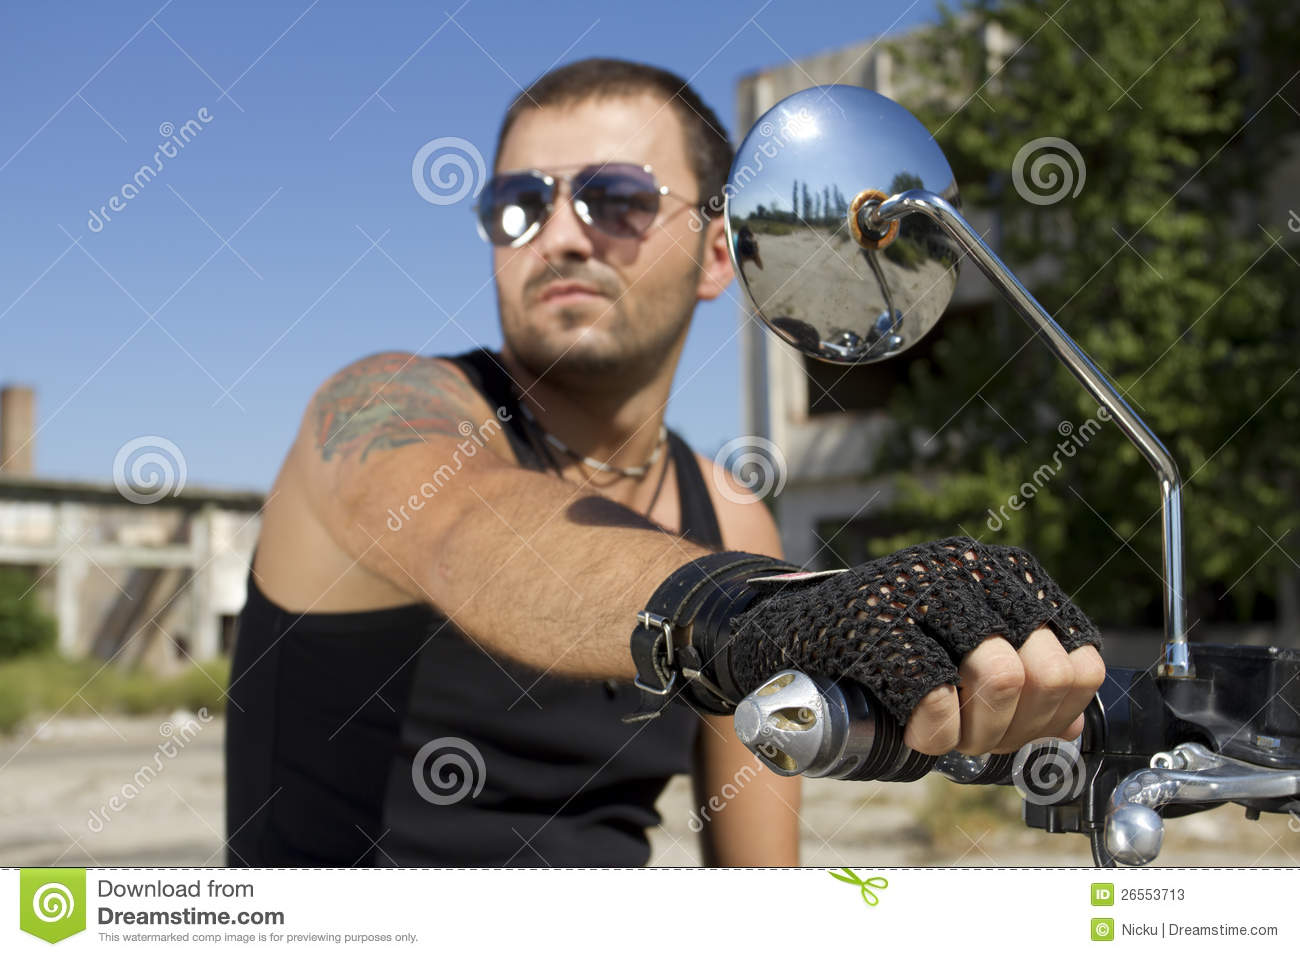 Good looking man holding a motorcycle handle